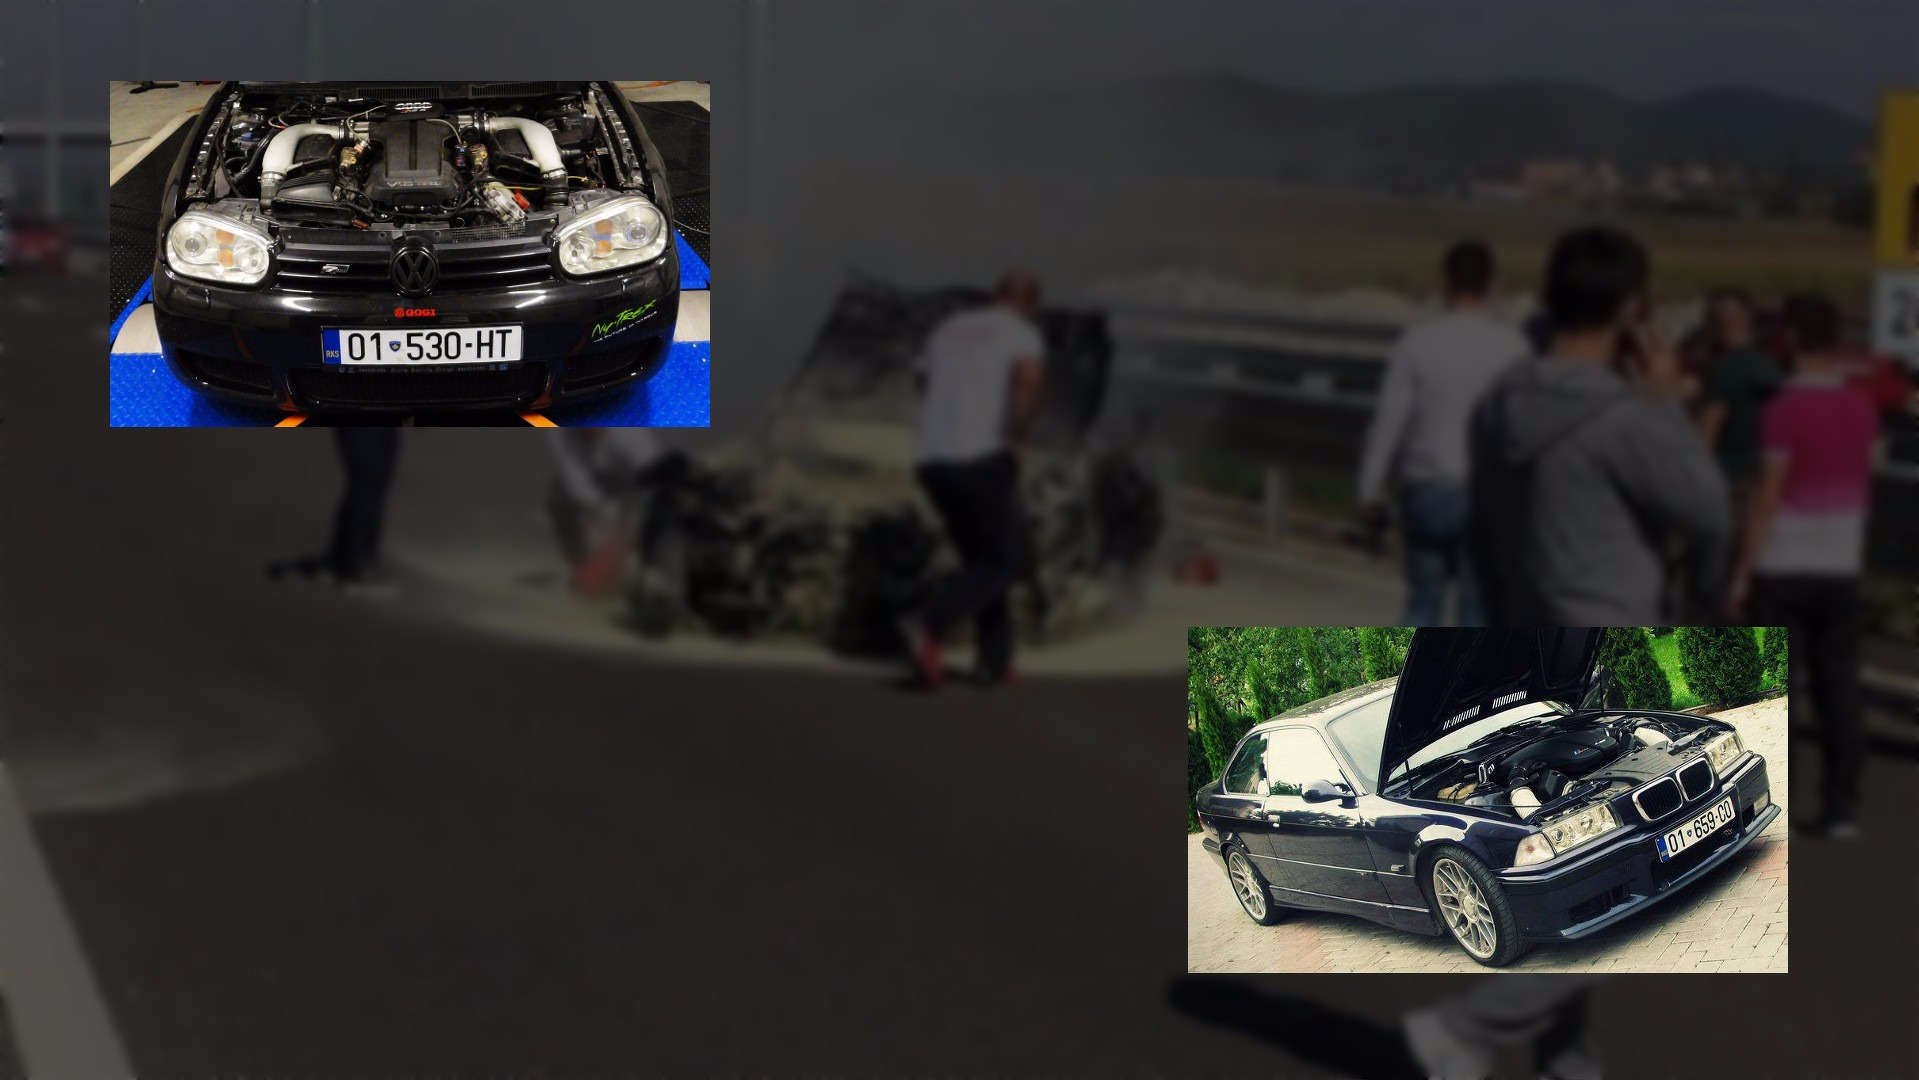 V10-powered BMW M3 and VW Golf race on freeway, doesn\'t end well